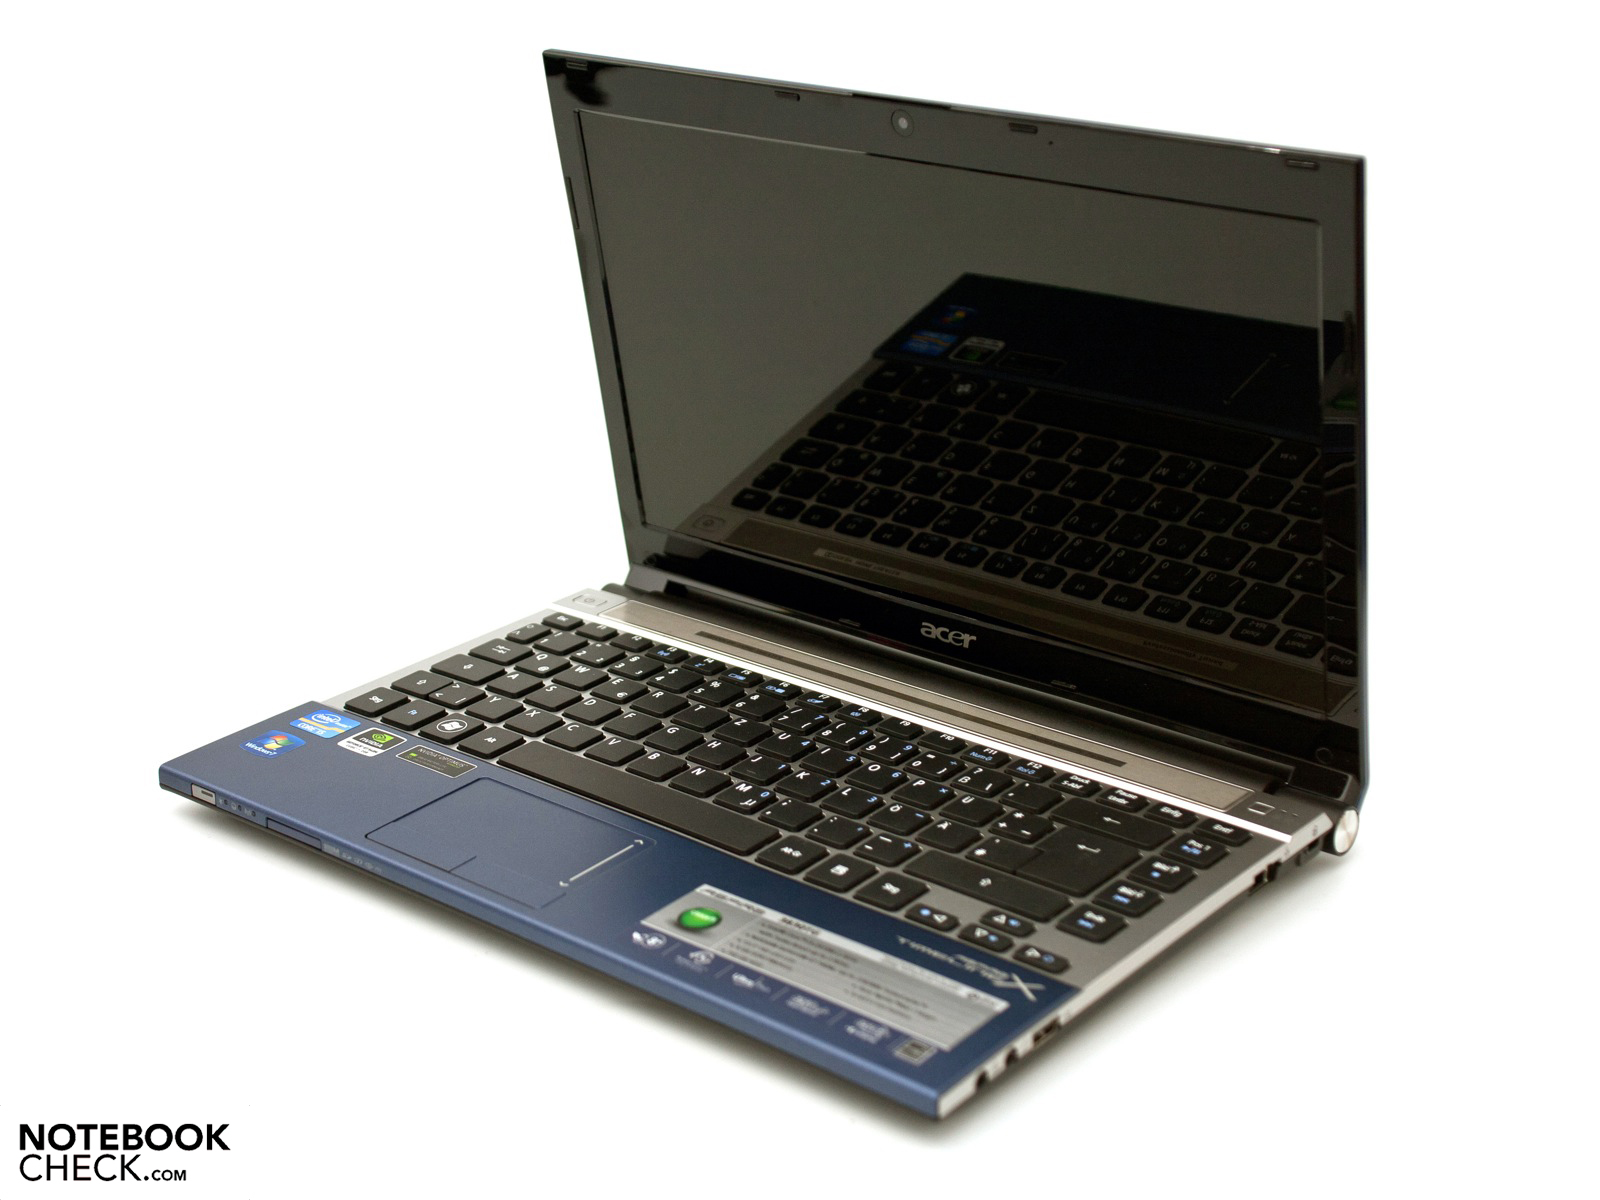 ACER ASPIRE 5552 NOTEBOOK ATHEROS WLAN DRIVER DOWNLOAD